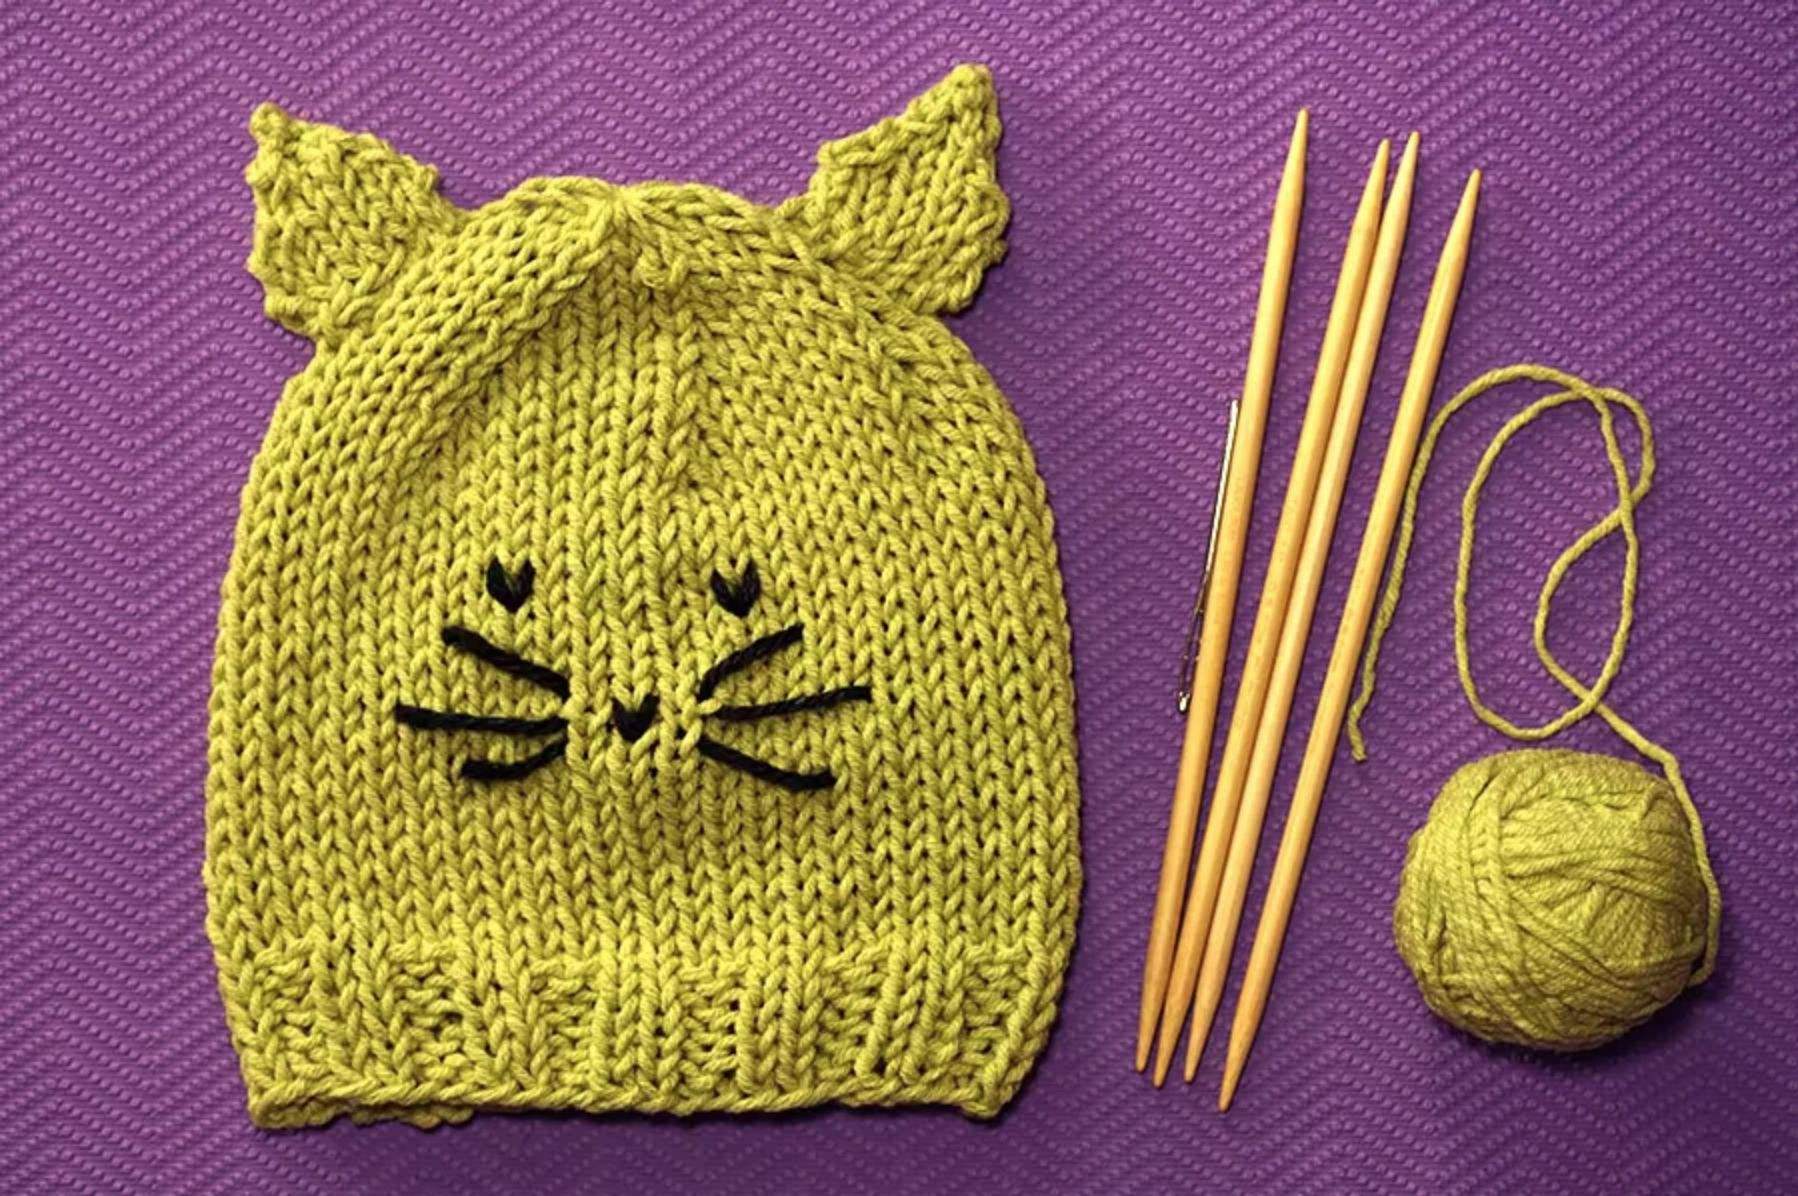 Begginer Knitting Projects Learning 25 Easy Knitting Patterns For Beginners